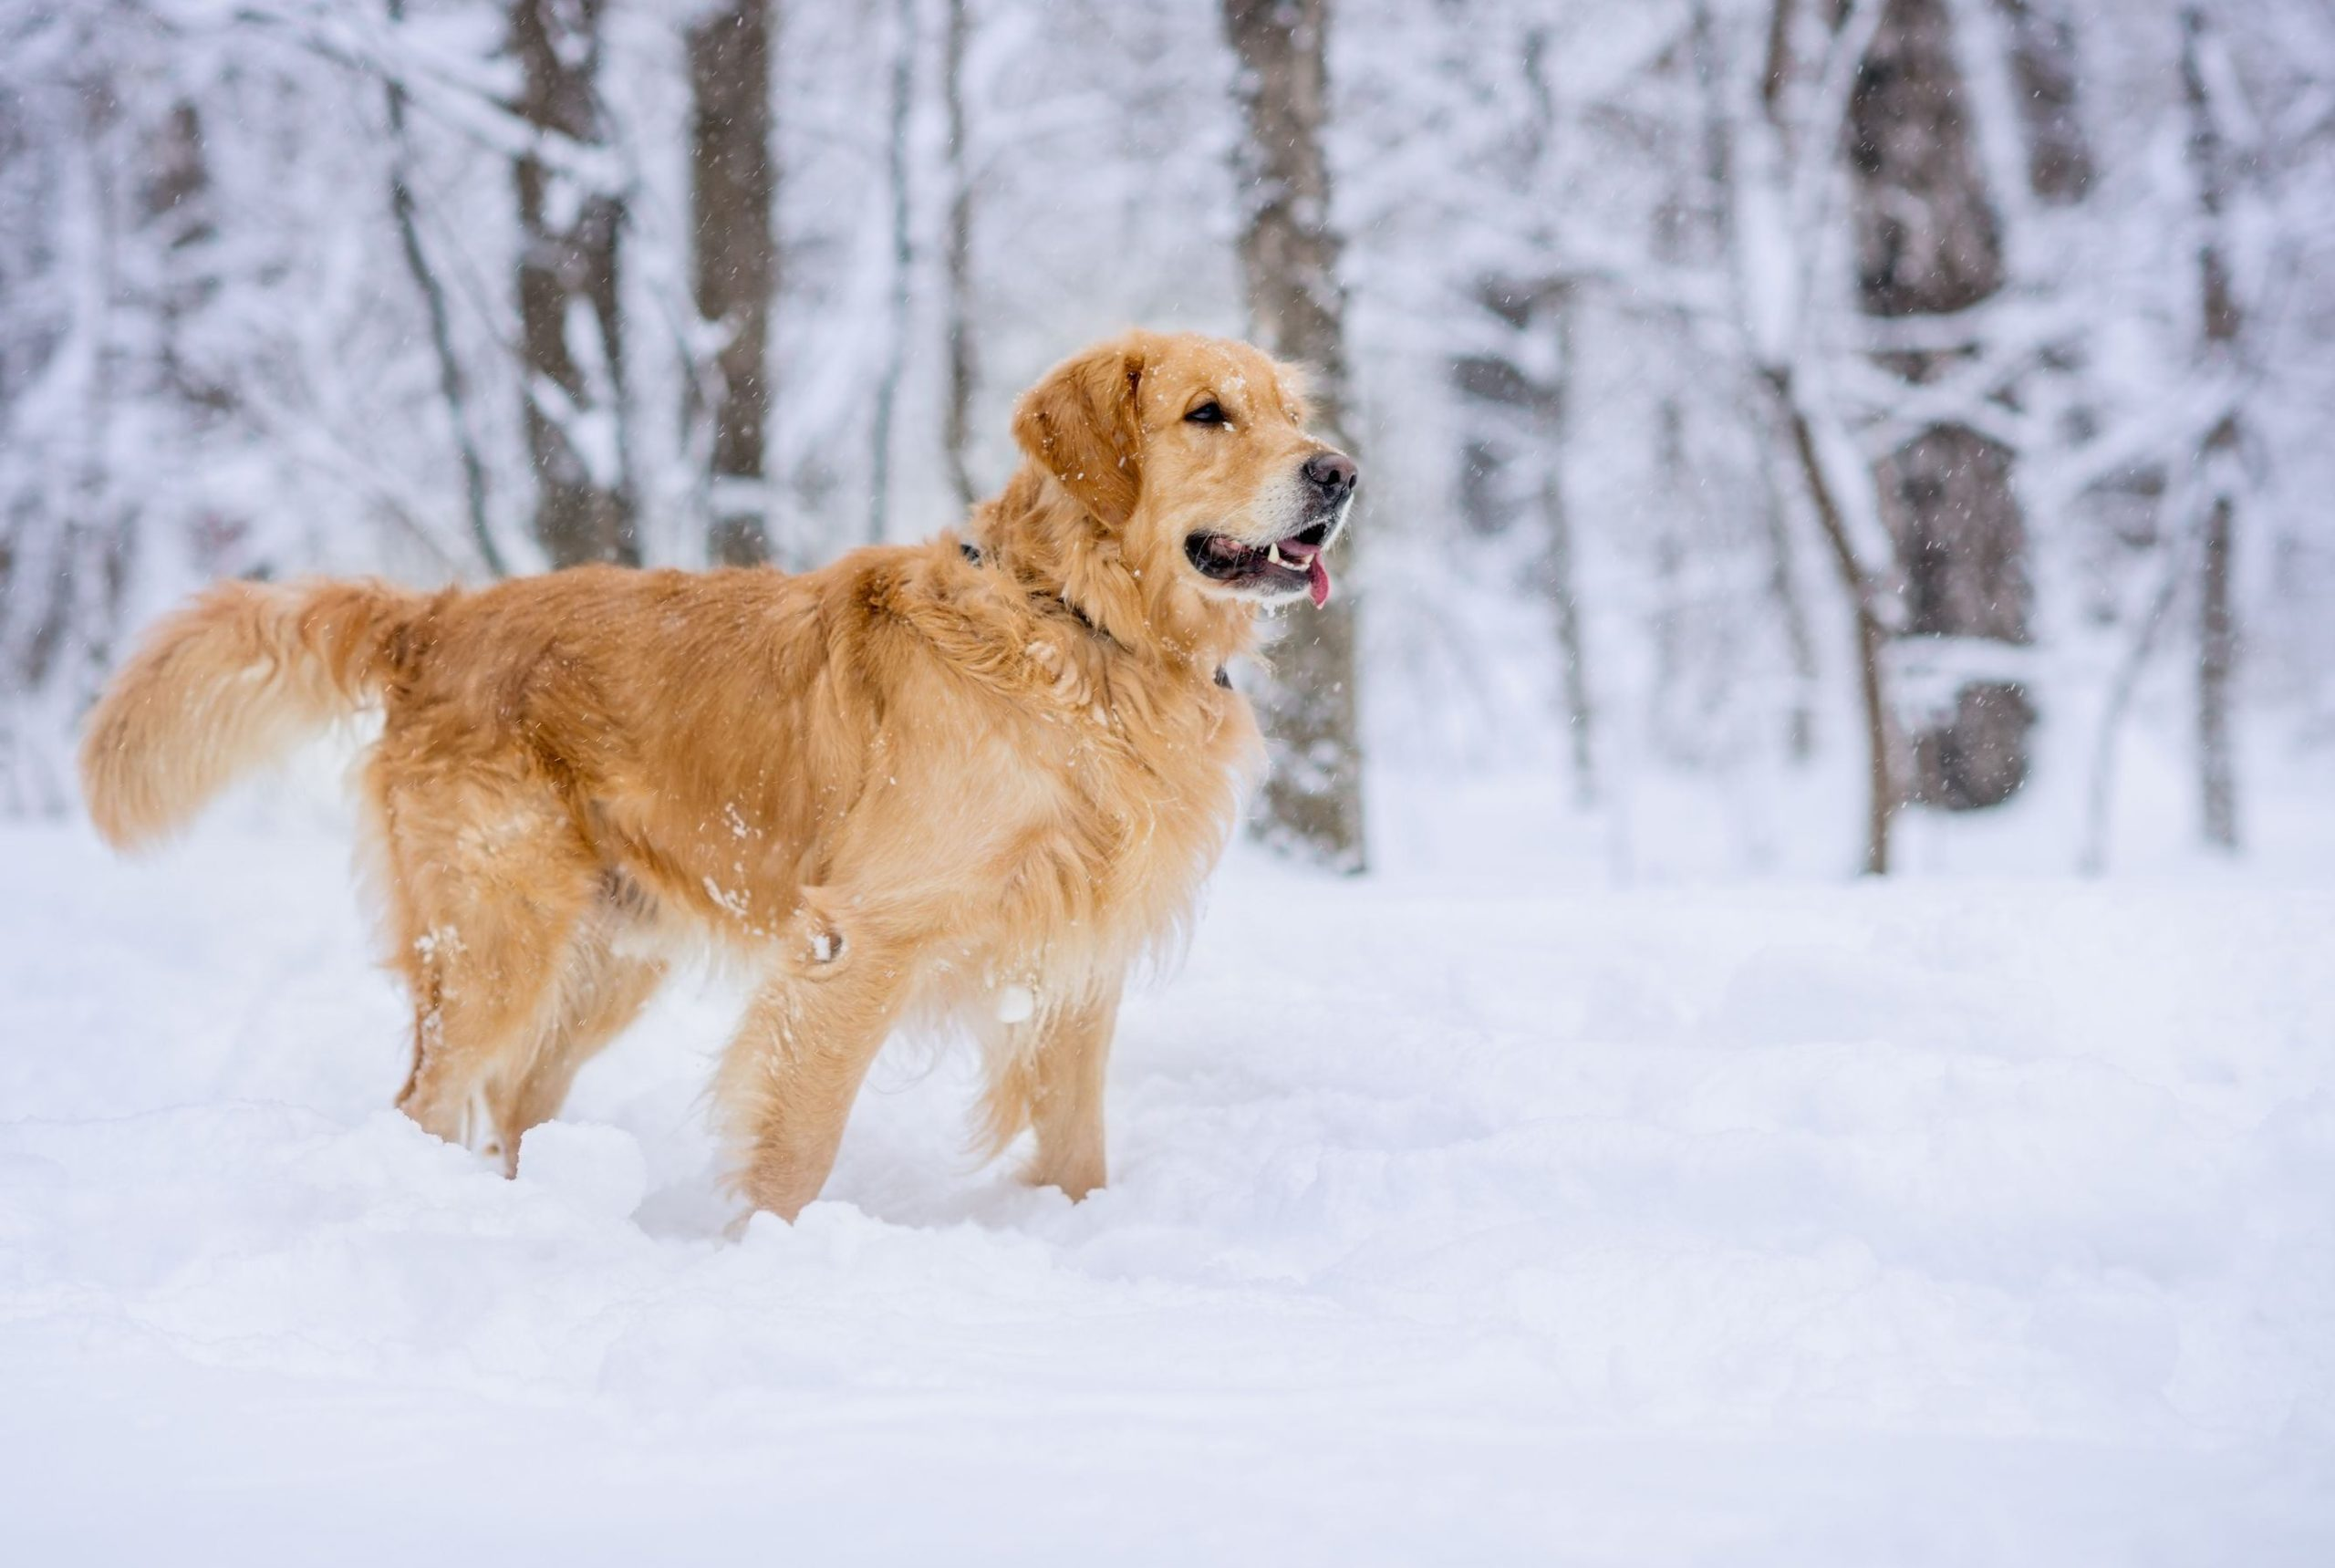 Golden Retriever Dog In Snow Barking Mad Dog Sitting Winter 1